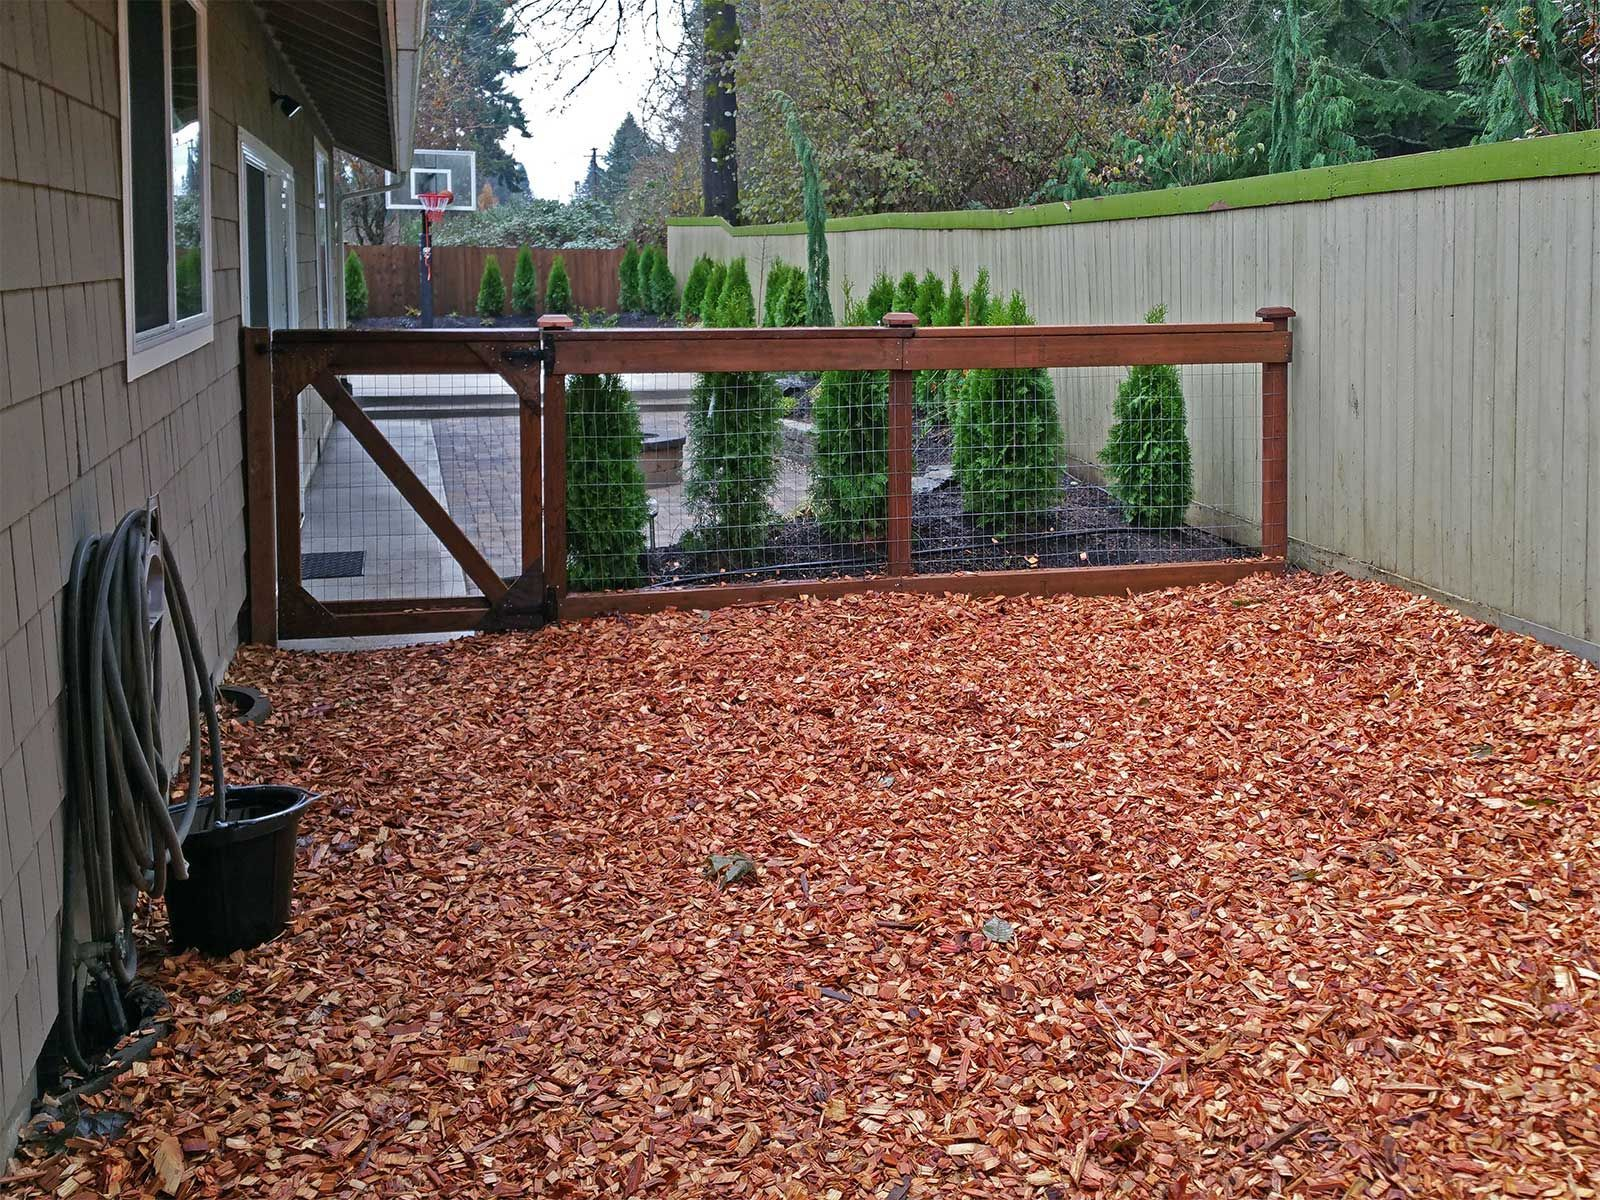 The dogs now have a safe and secure area to play outside. This ... Kid Friendly Backyard Without Gr on